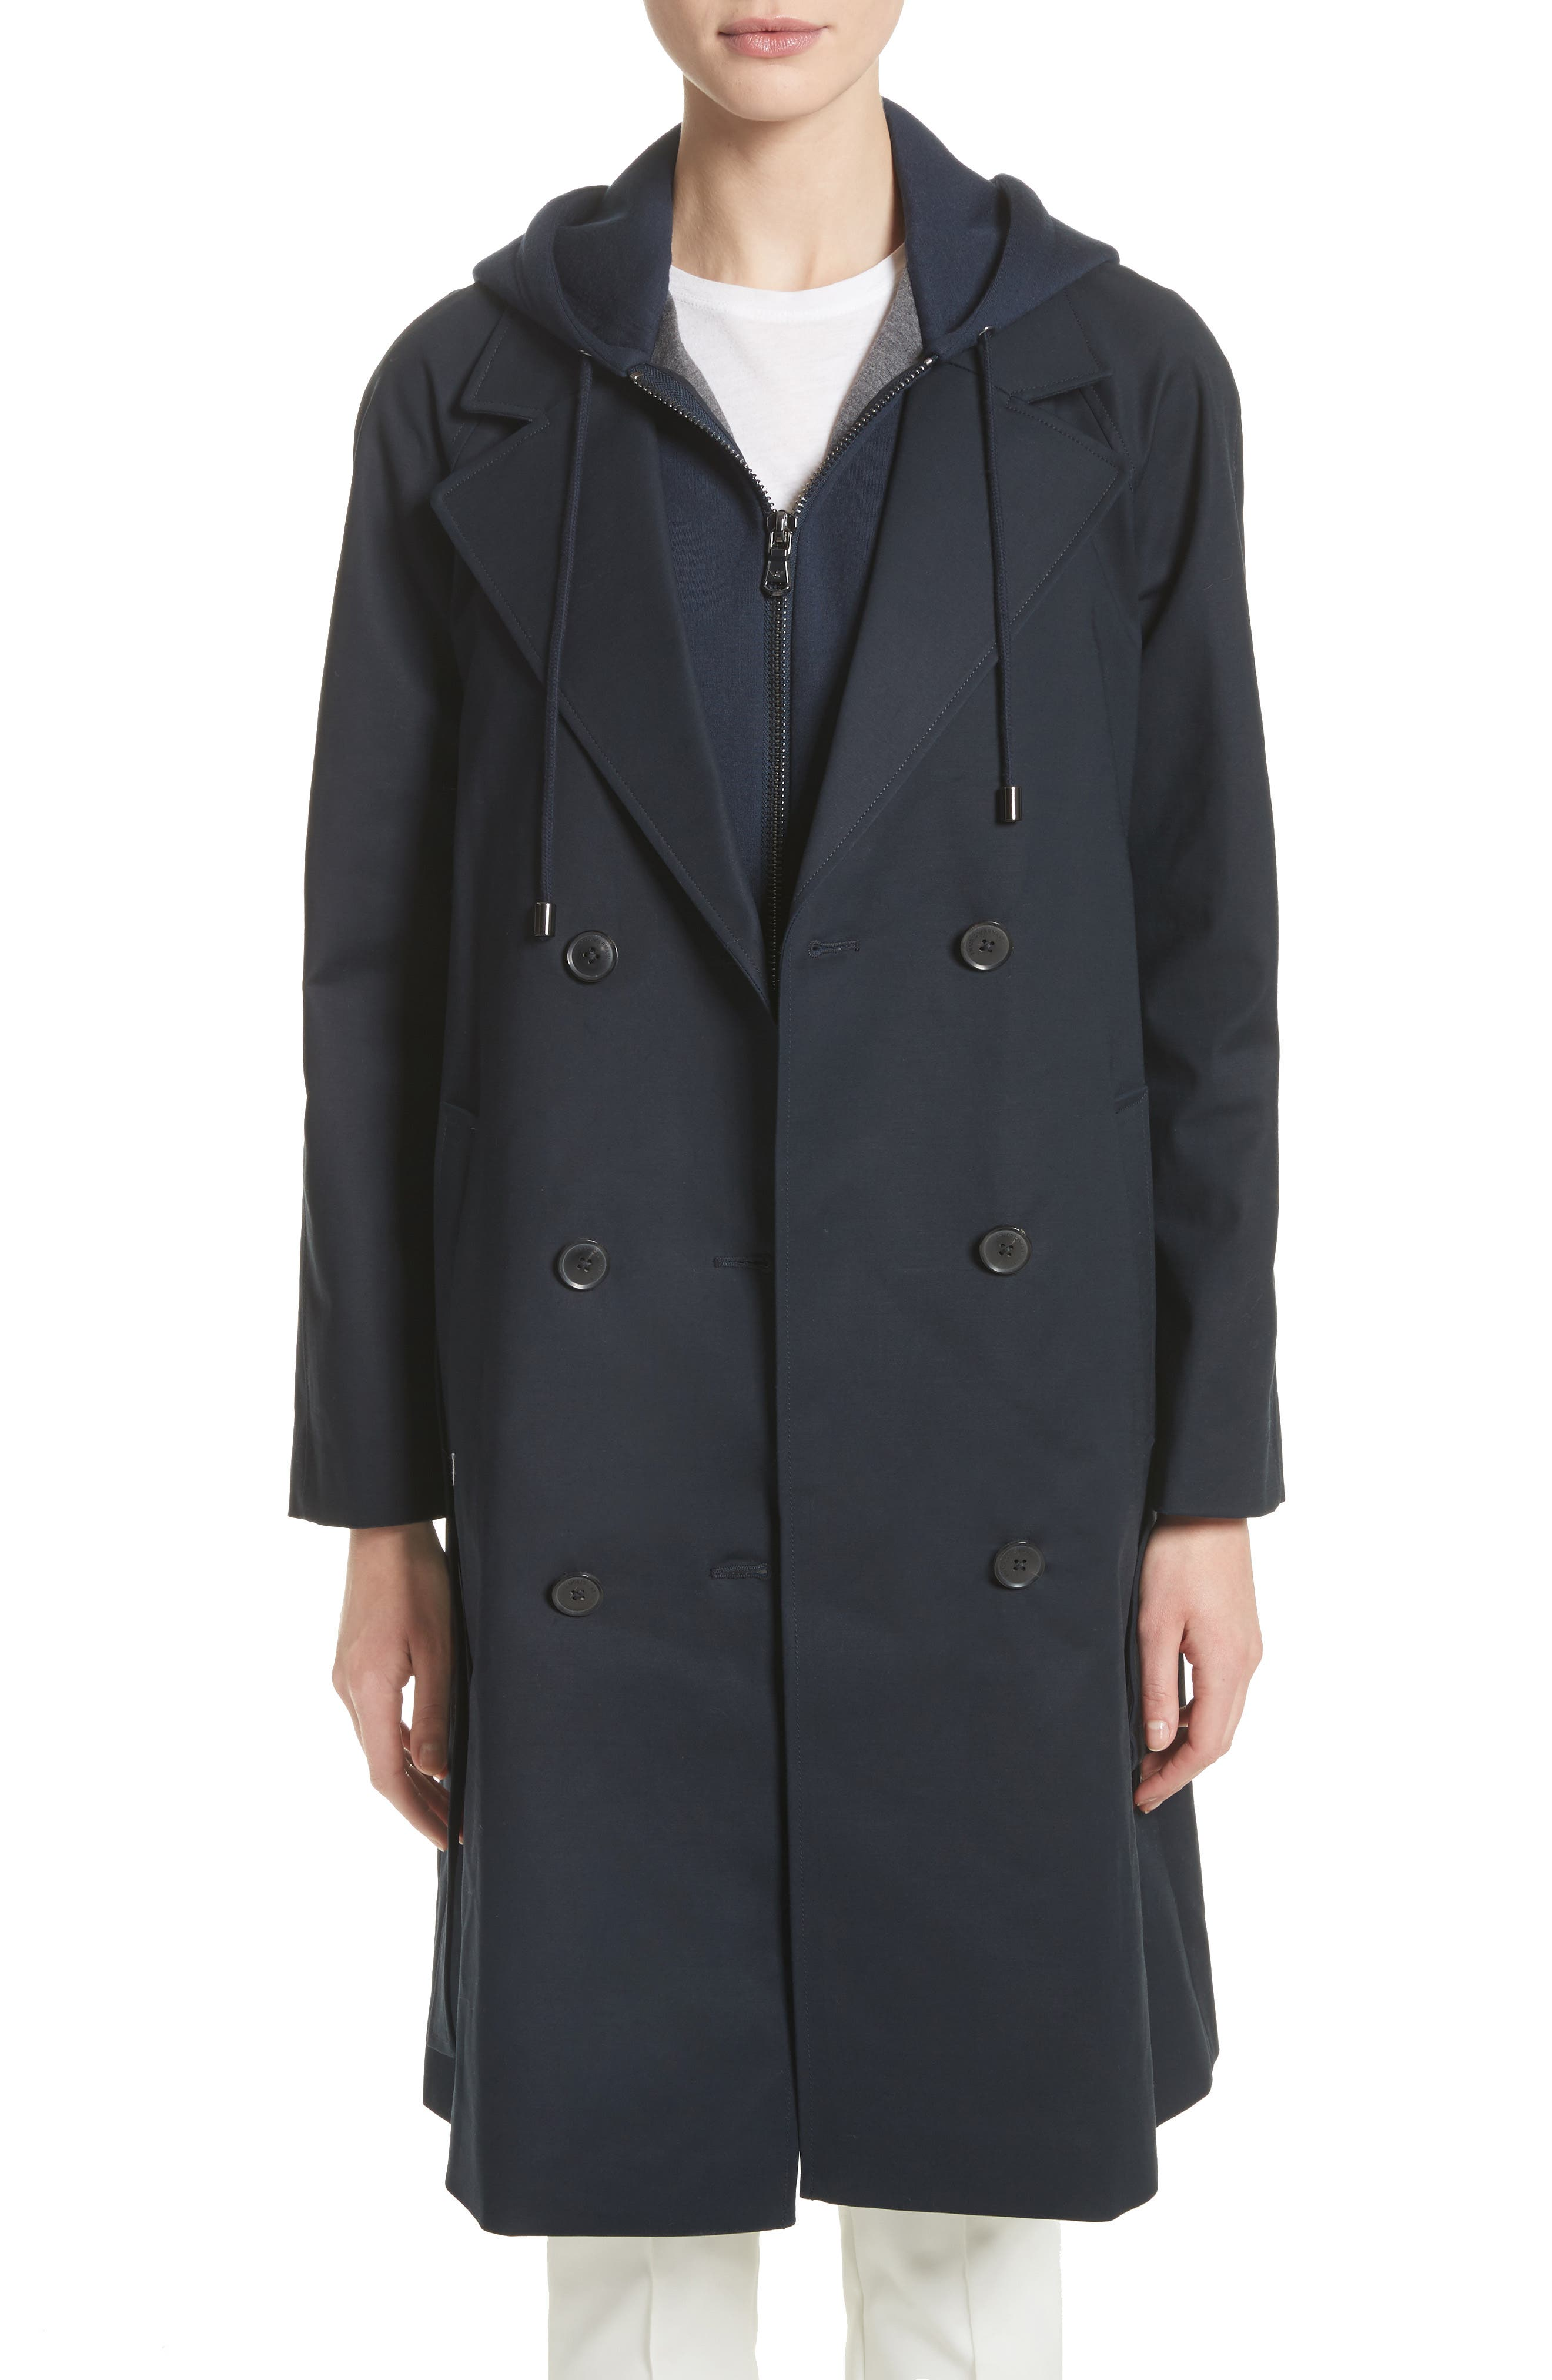 Alternate Image 1 Selected - Emporio Armani Double Breasted Cotton Blend Trench Coat with Removable Hoodie Inset